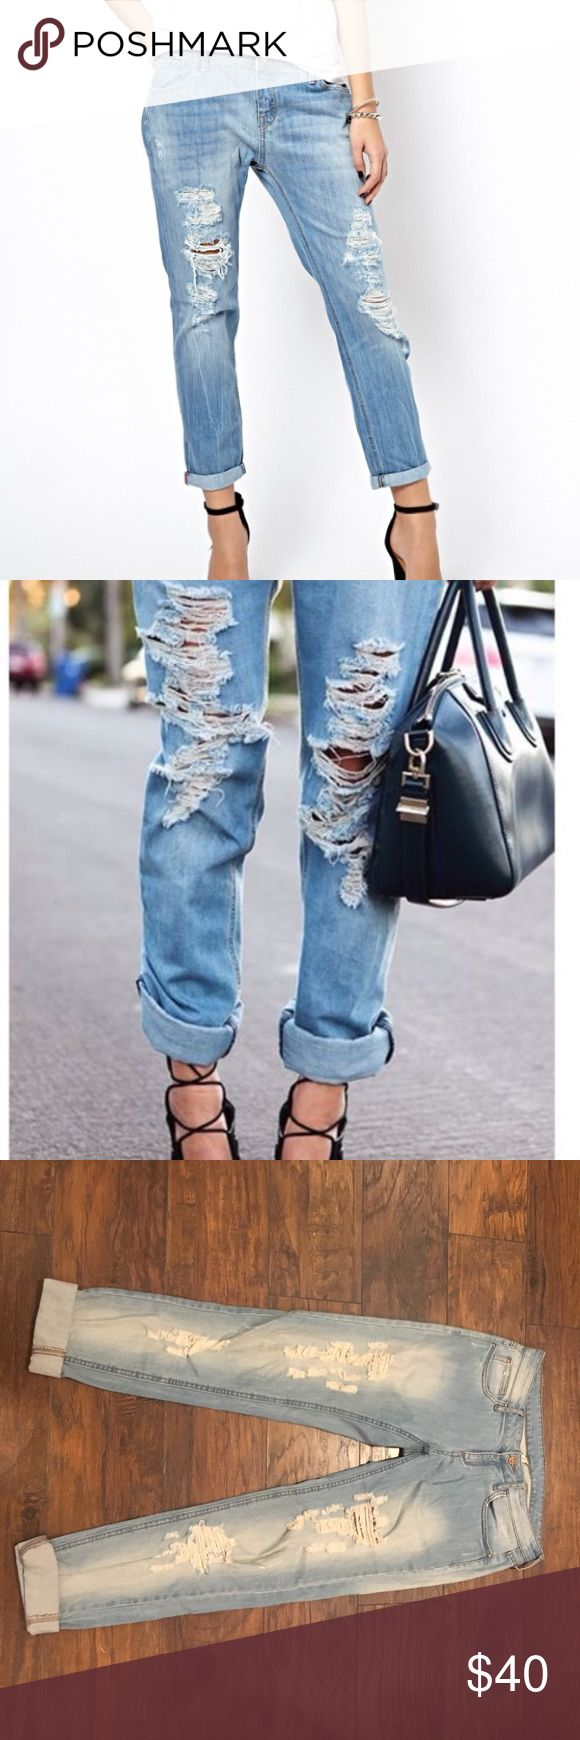 "Mango light wash ripped jeans! NWOT. New never been worn. Mango jeans. Light washed ripped. Size 6. 25 and 1/2"" cuffed; uncuffed 30"" inseam. So trendy! Any questions lmk! Mango Jeans Ankle & Cropped"